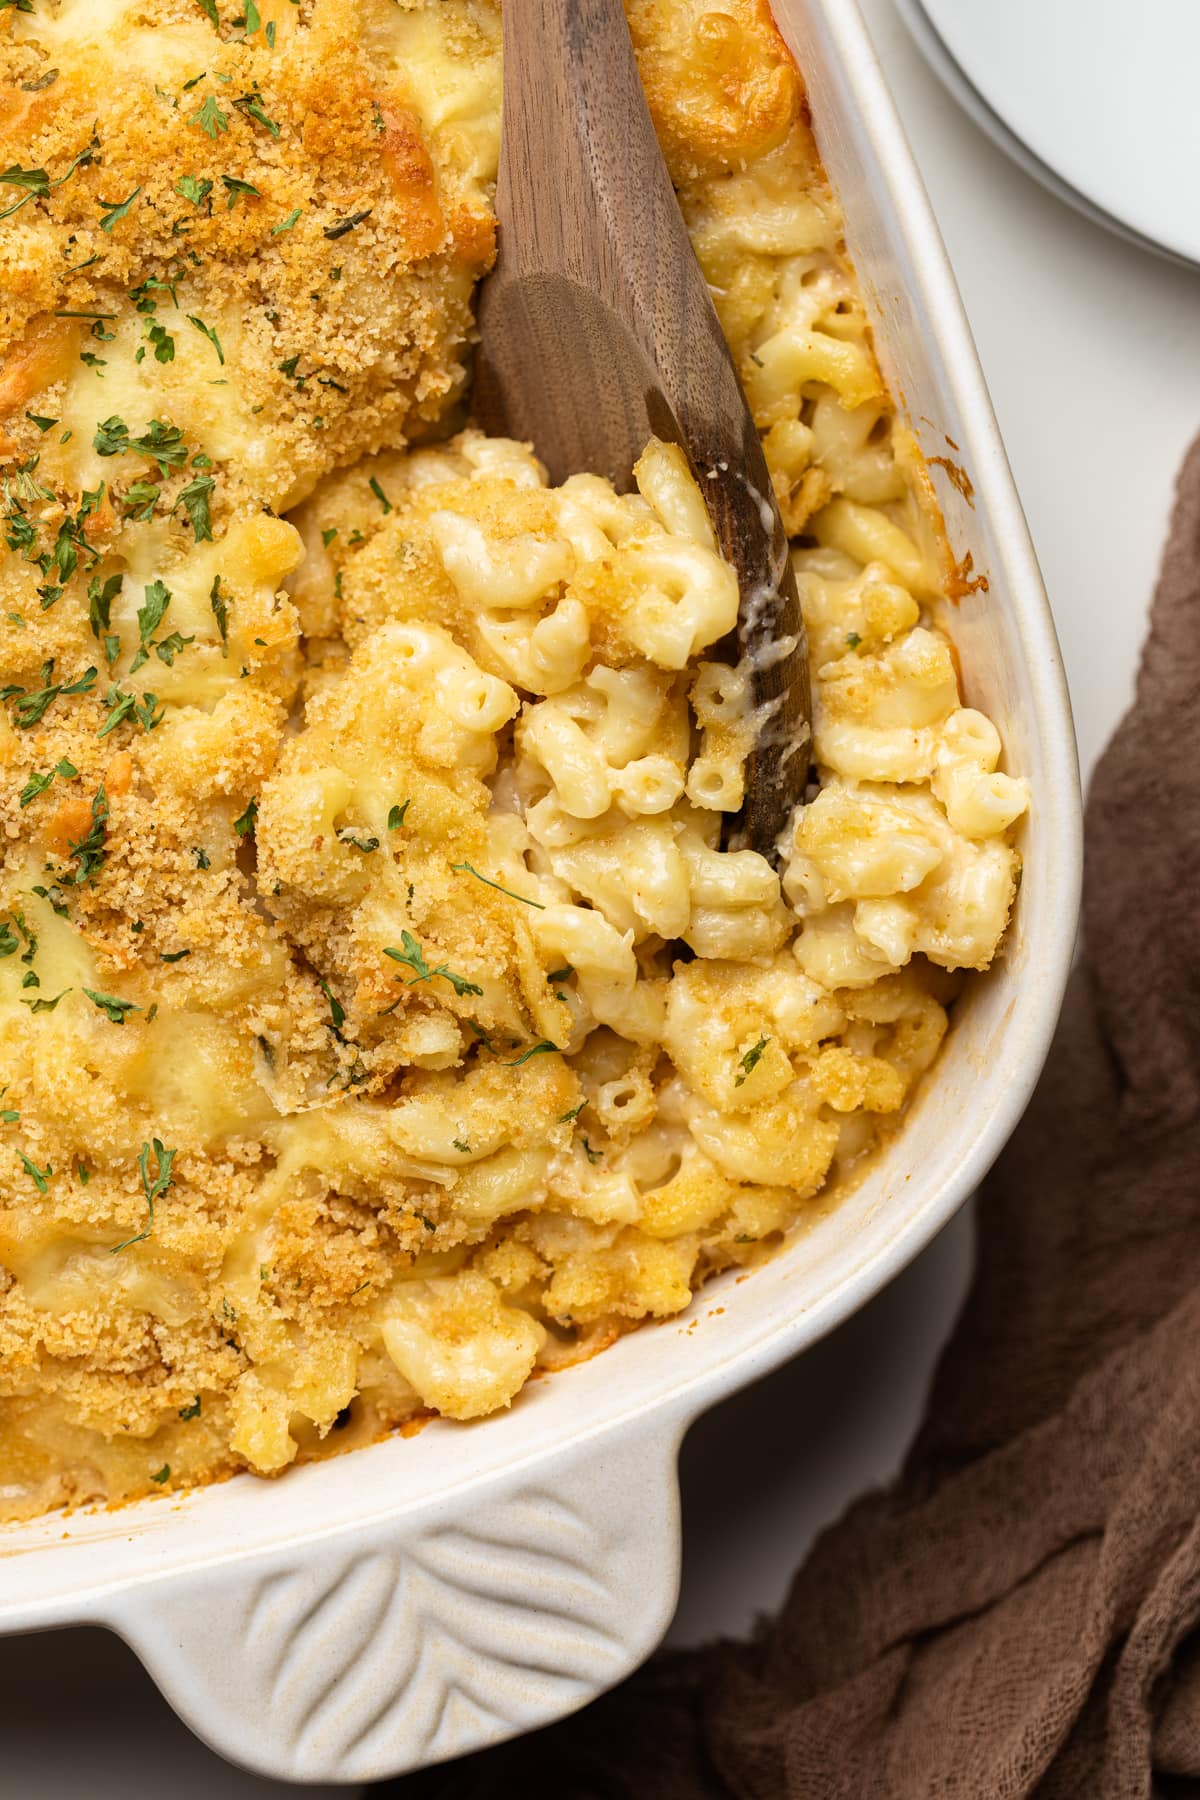 Southern Baked Mac and Cheese with Breadcrumbs with green herbs on top